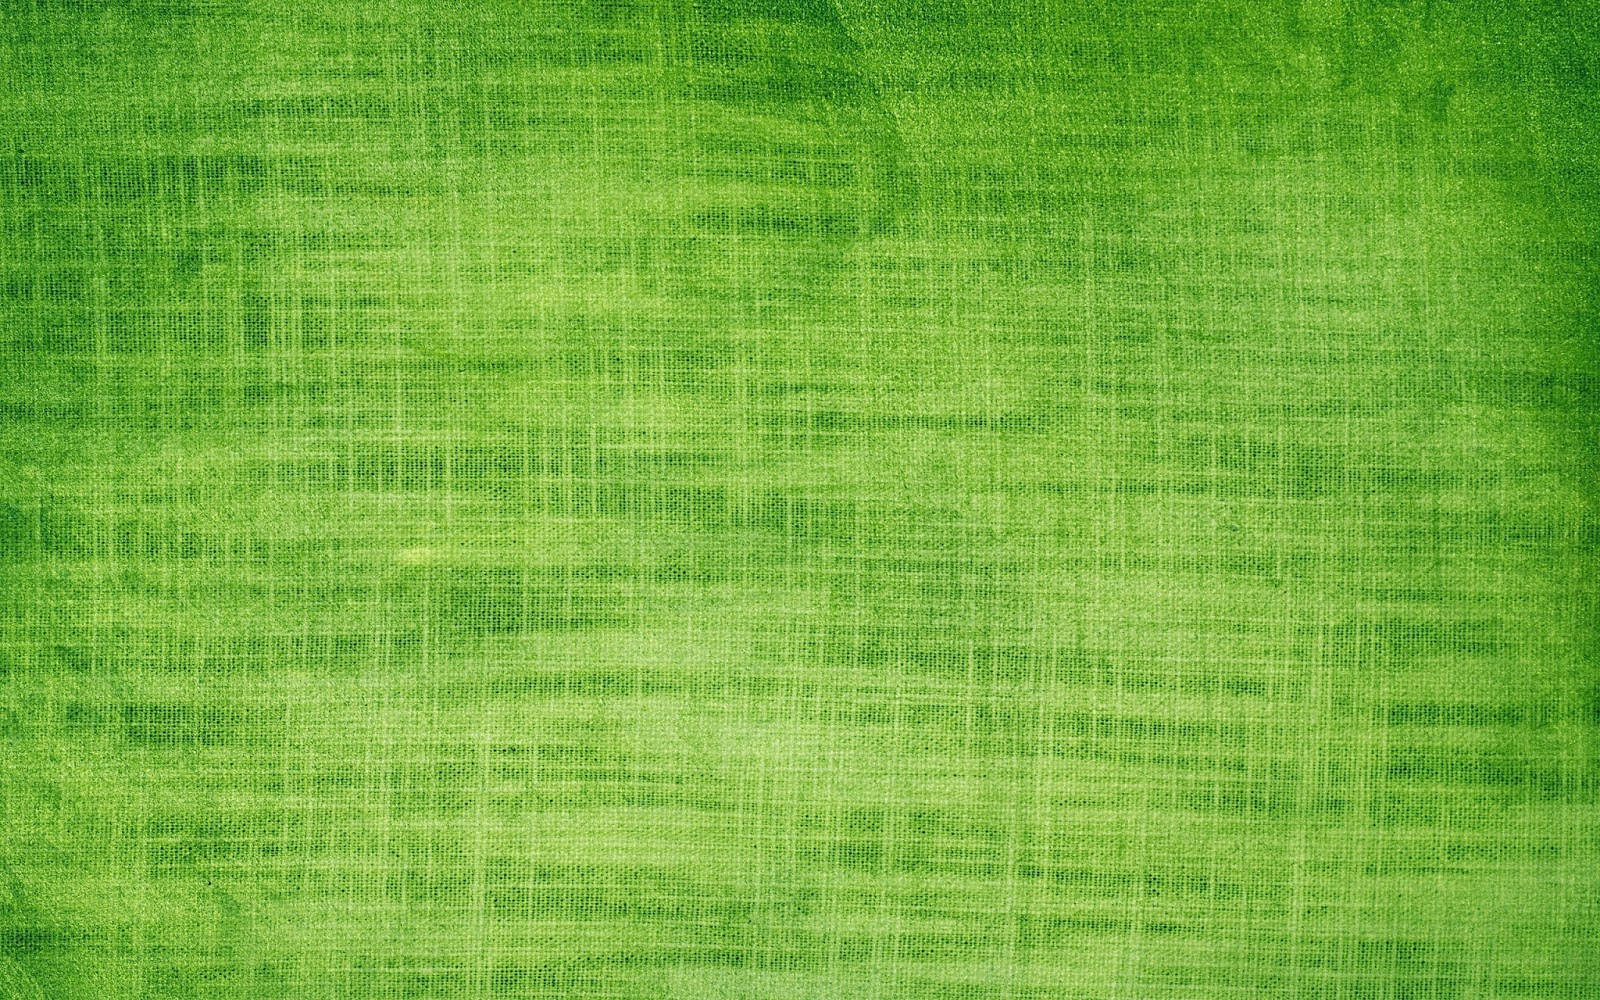 Hd Wallpapers With Quotes For Desktop Quotes 33 20 Amazing Green Backgrounds